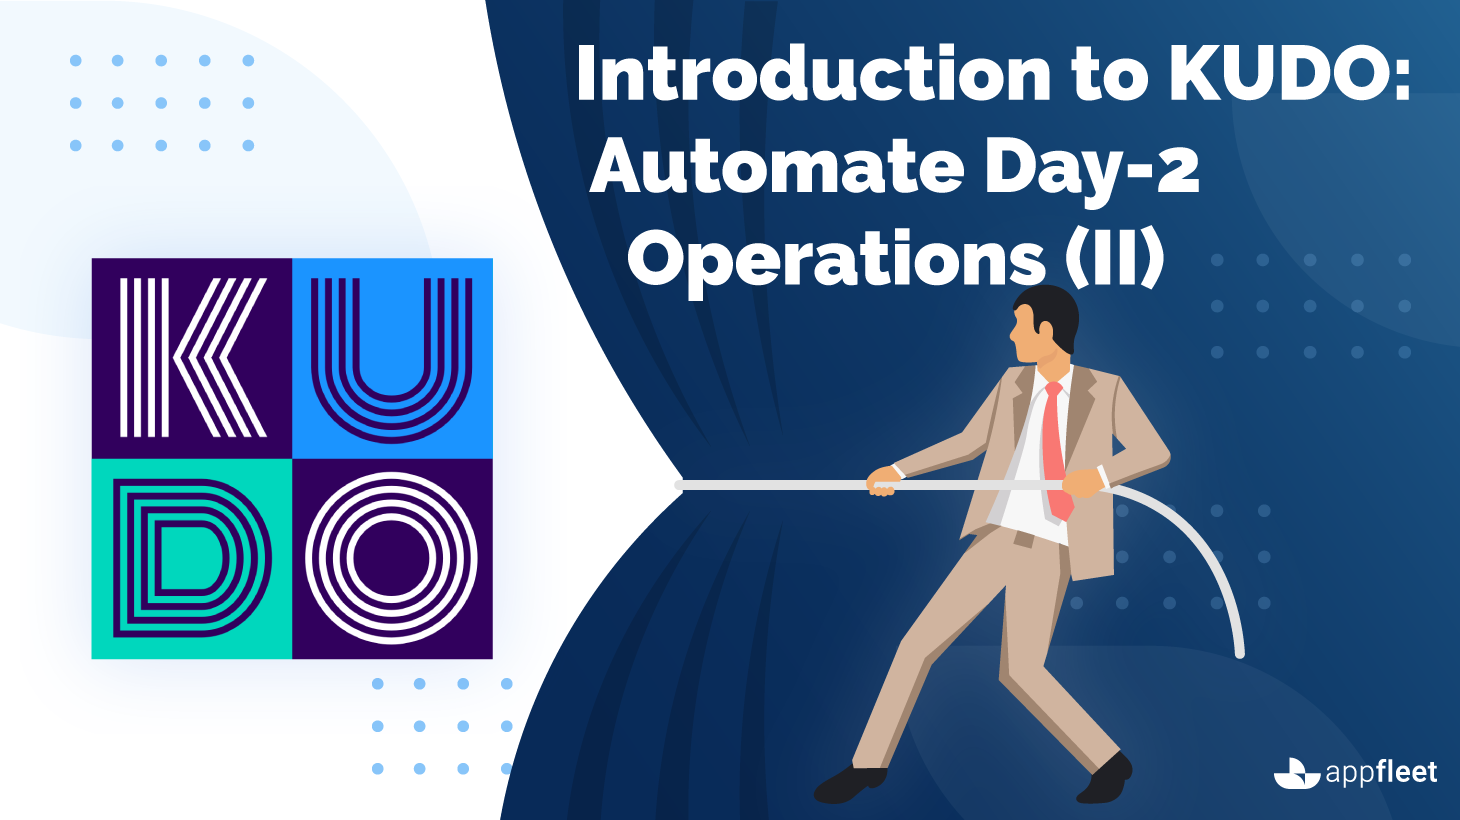 Introduction to KUDO: Automate Day-2 Operations (II)